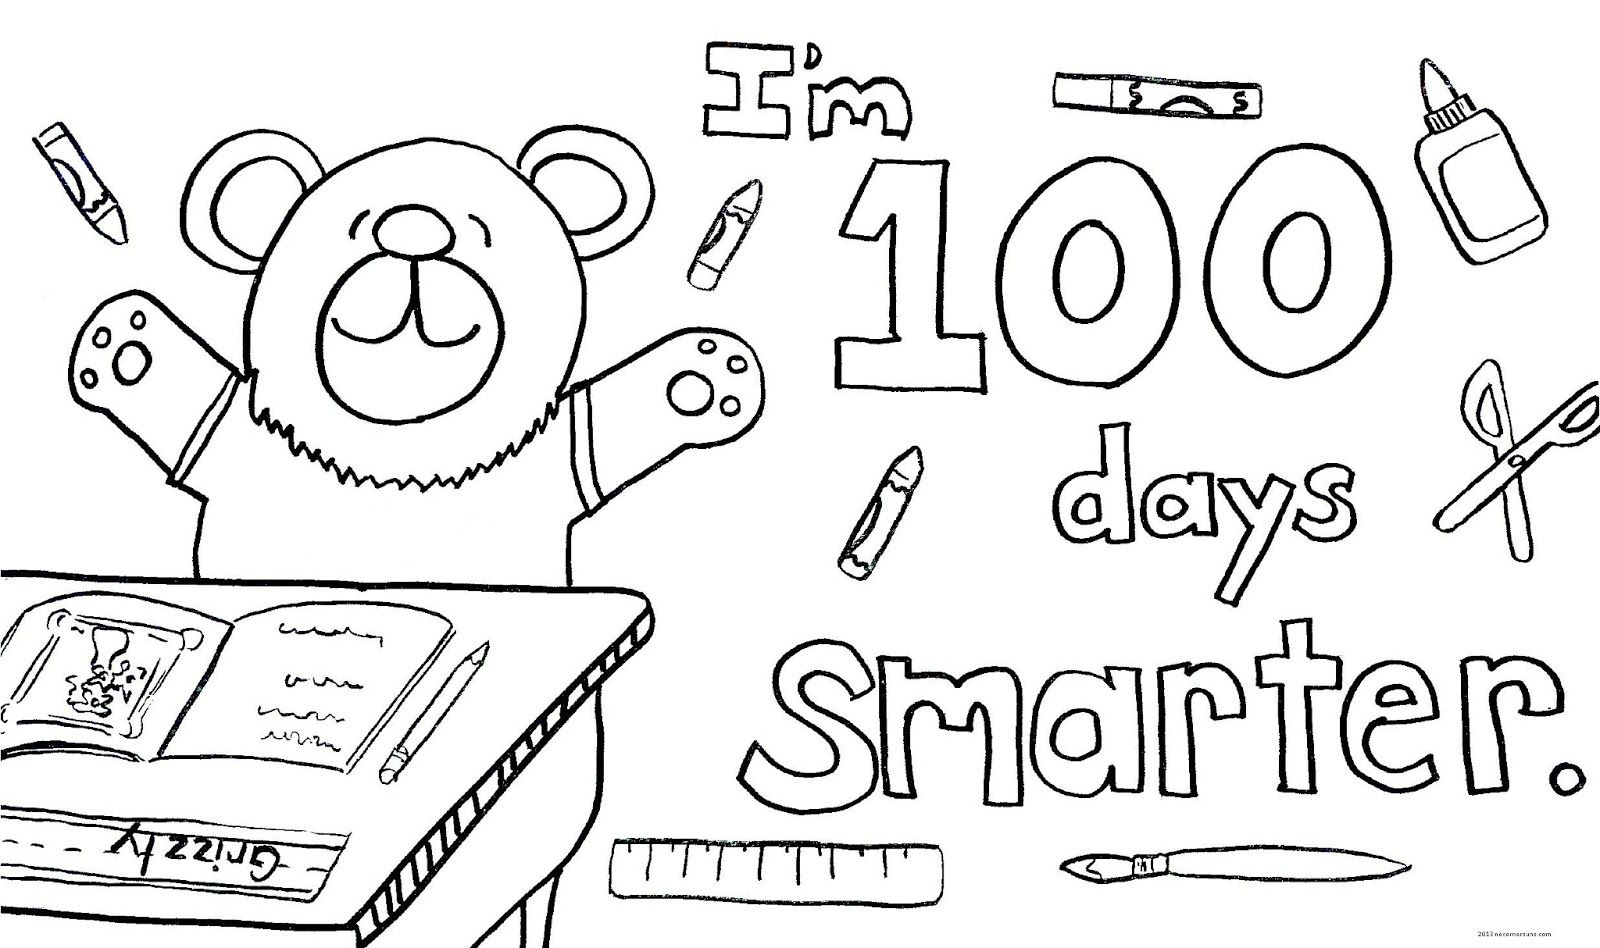 I M 100 Days Smarter Coloring Page Coloring Pages 100 Coloring Pages